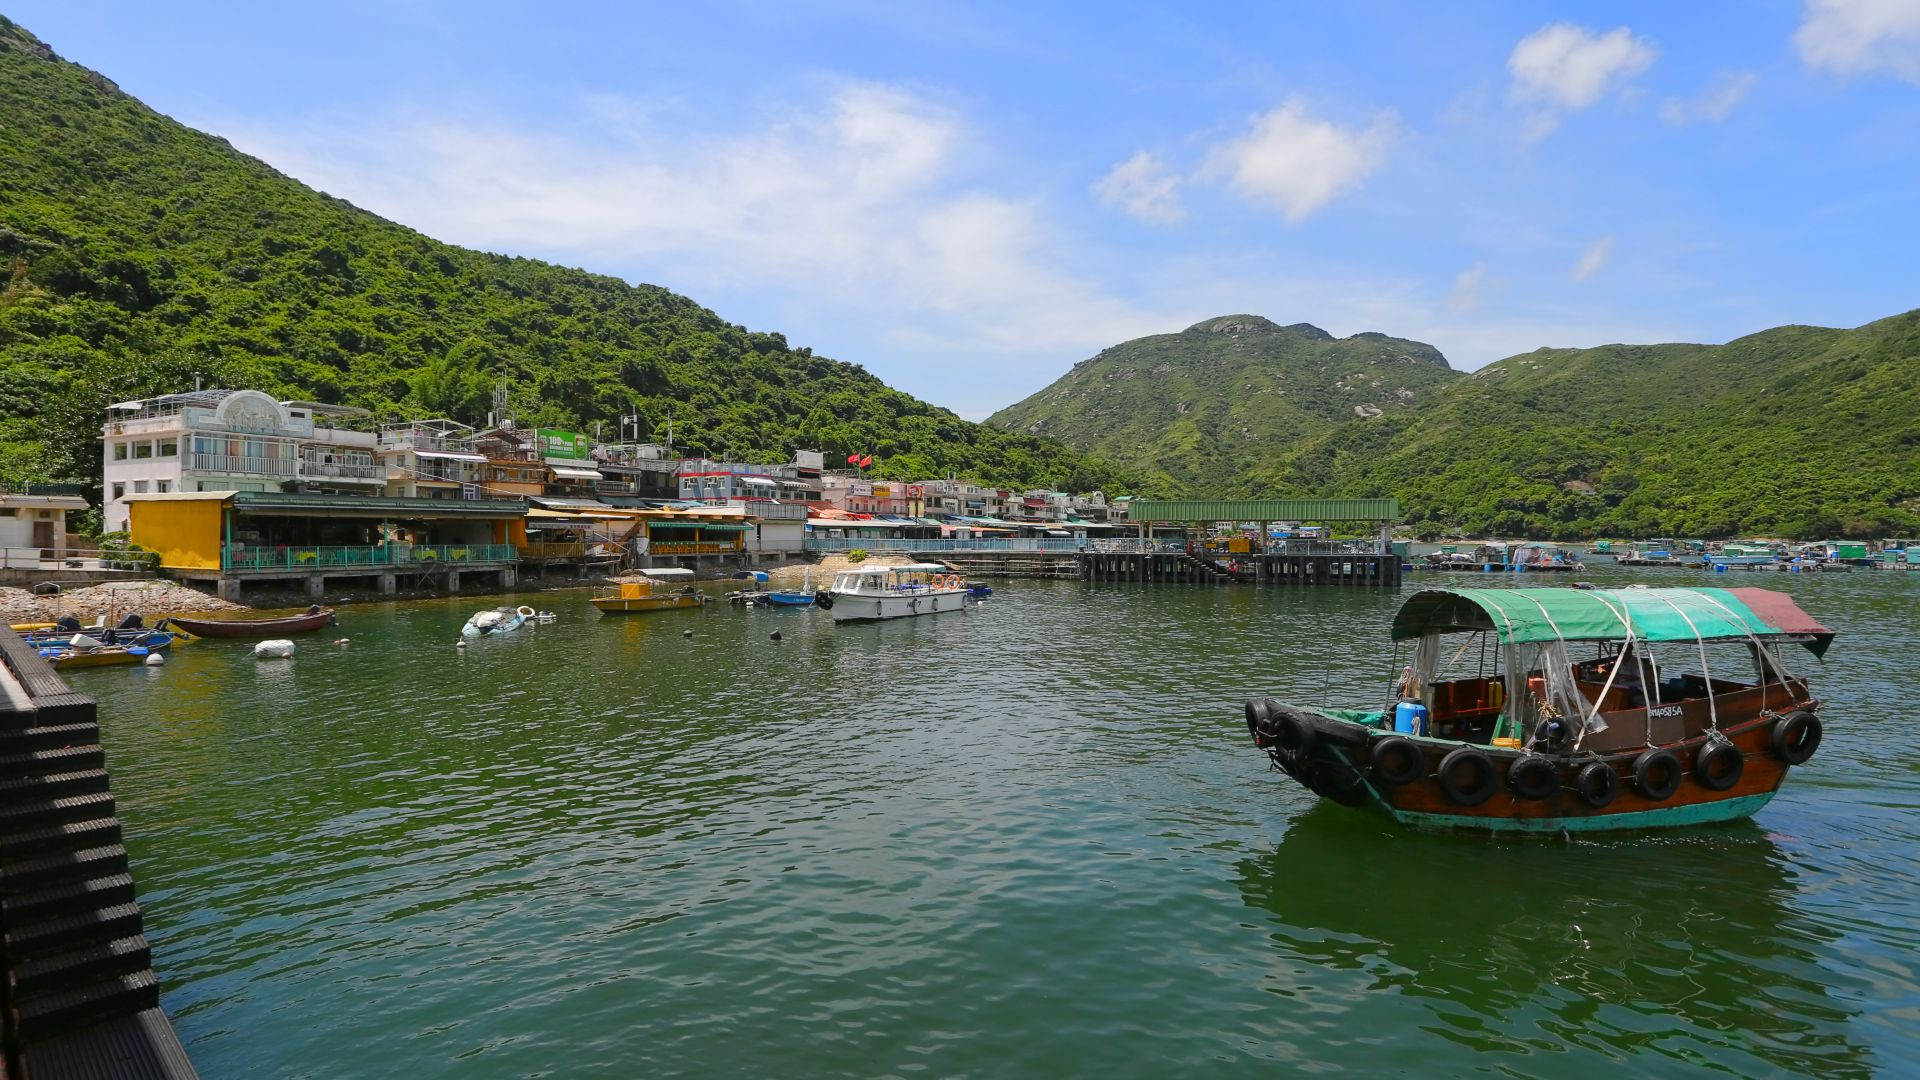 Experience fishing villages, temples, beaches, cafes and bars on a Lamma Island hike